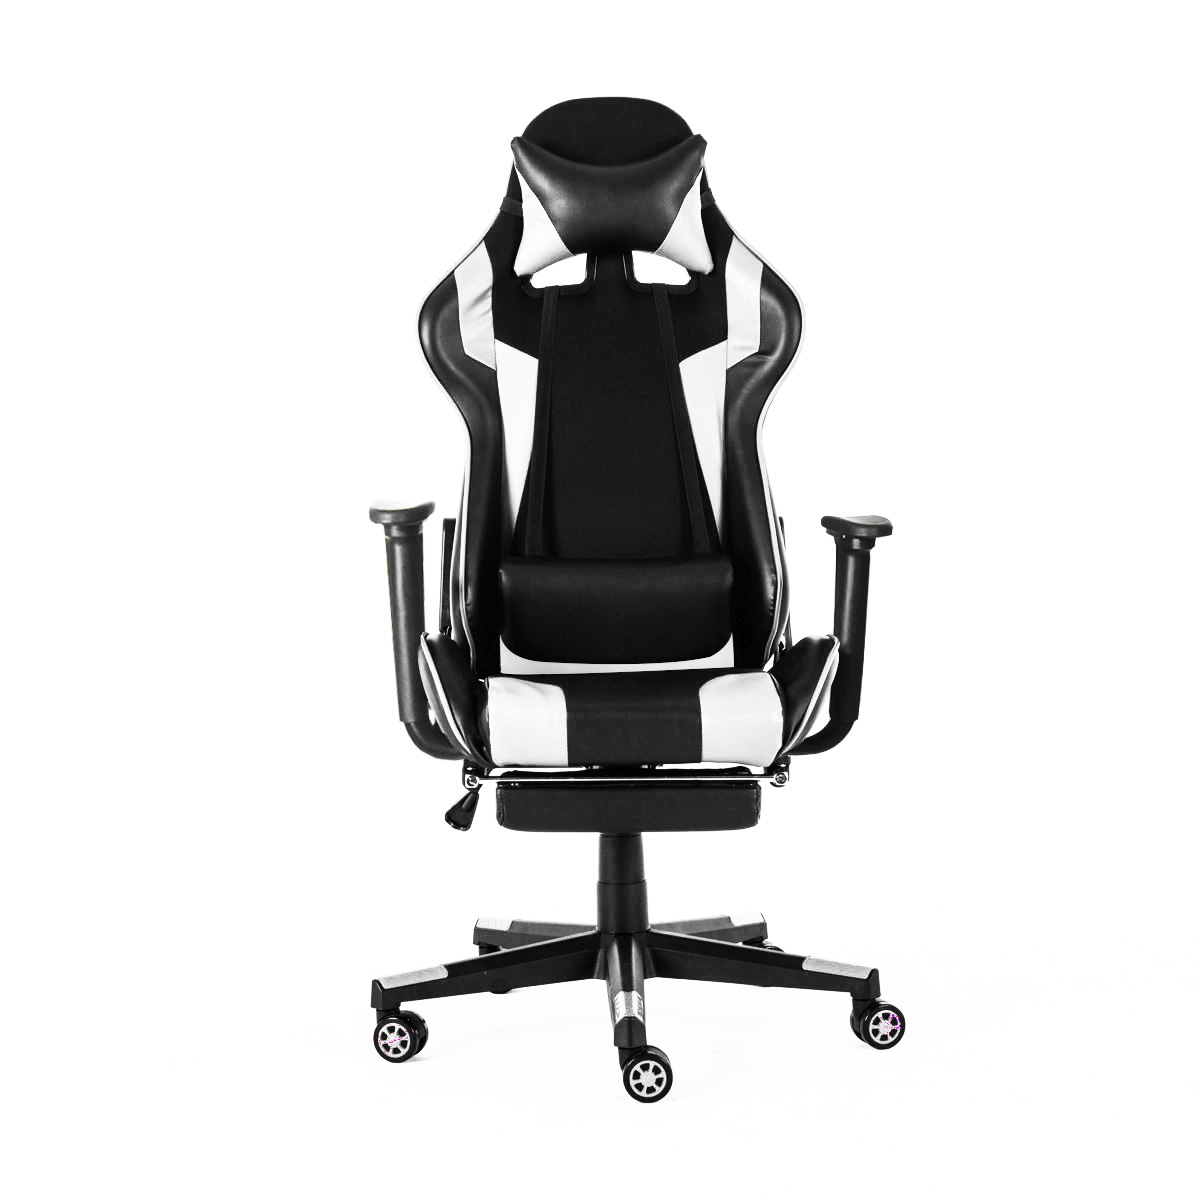 Office Chairs 180° Lying Massage Household Reclining Office Computer WCG Gaming Chairs Furniture Armchair With Footrest